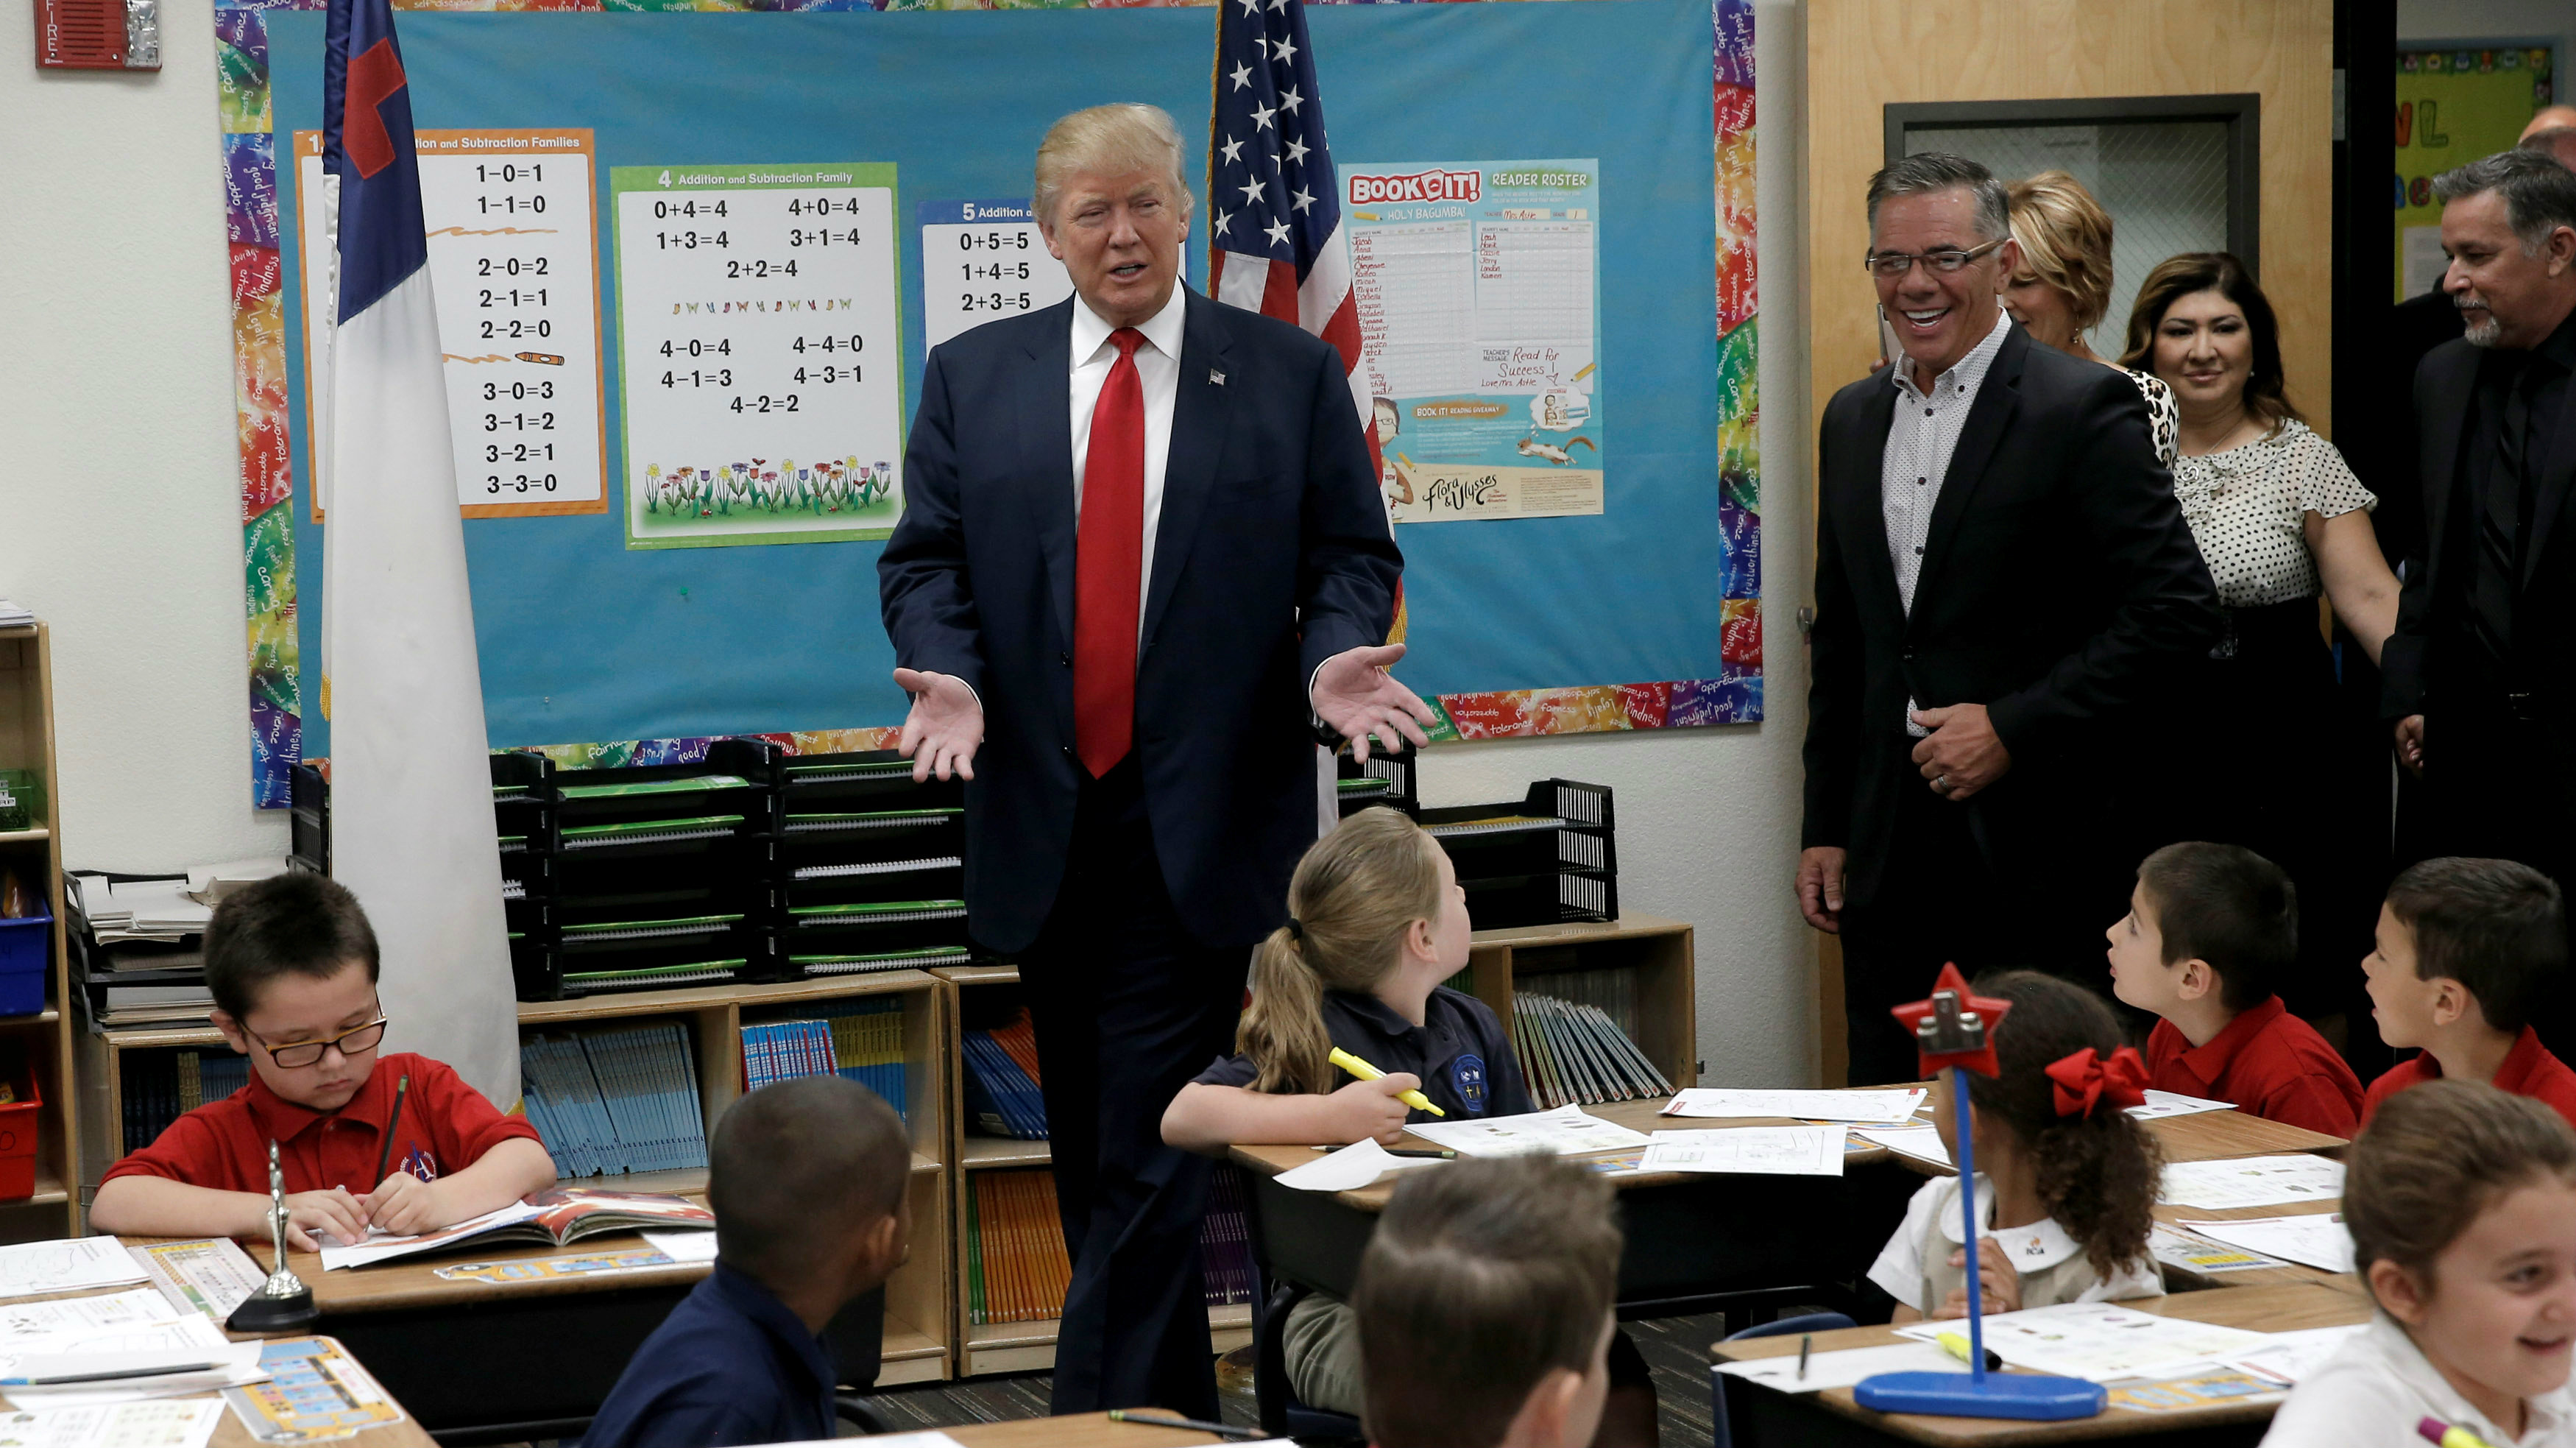 Republican presidential nominee Donald Trump visits children in a classroom during a campaign visit to.